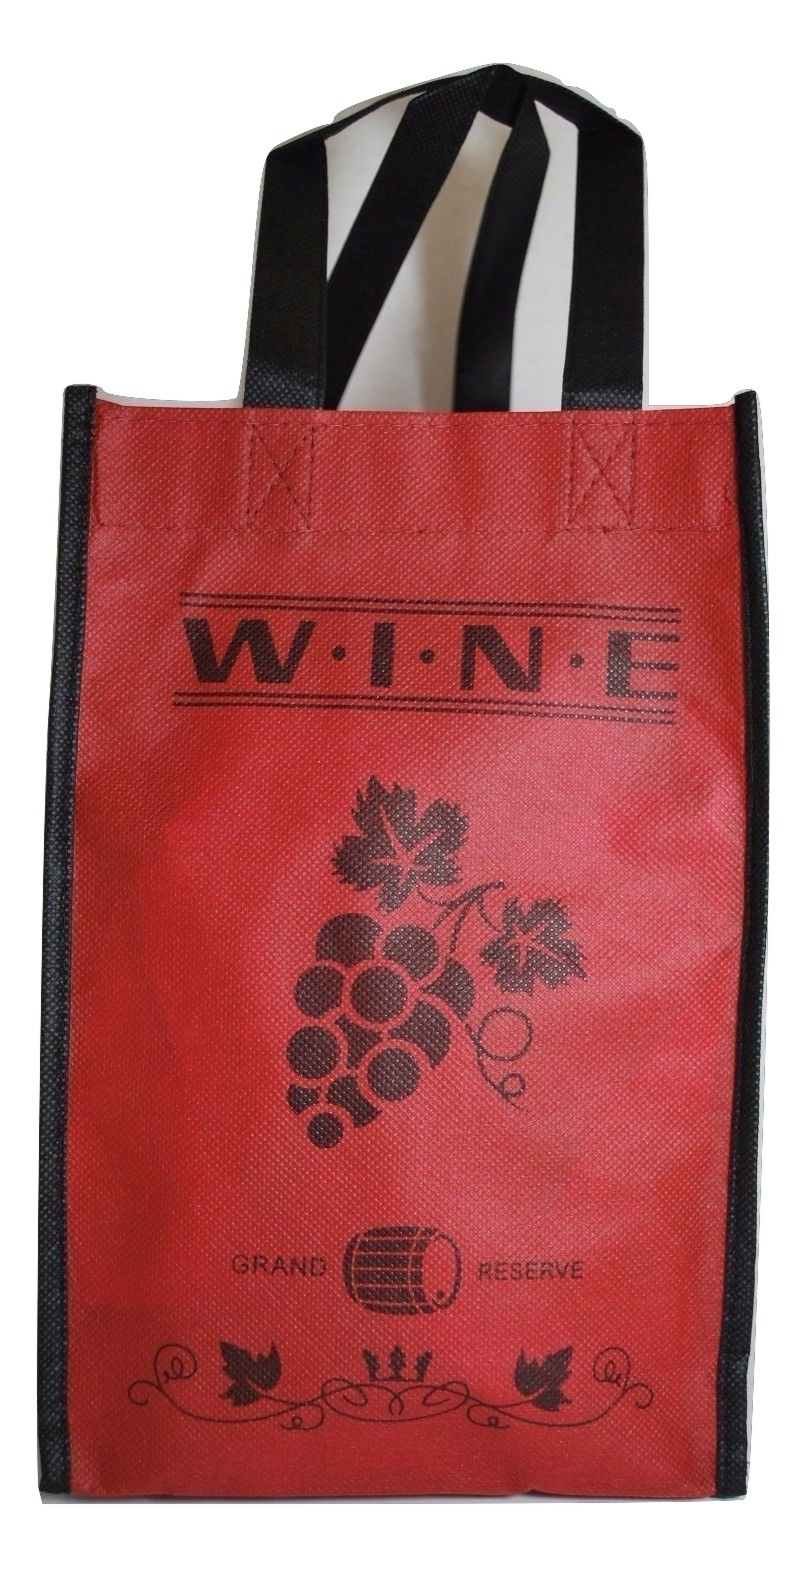 Set of 2 Red Wine Tote Bags Wine Bags by Pearlbedding (each holds 4 Bottles)